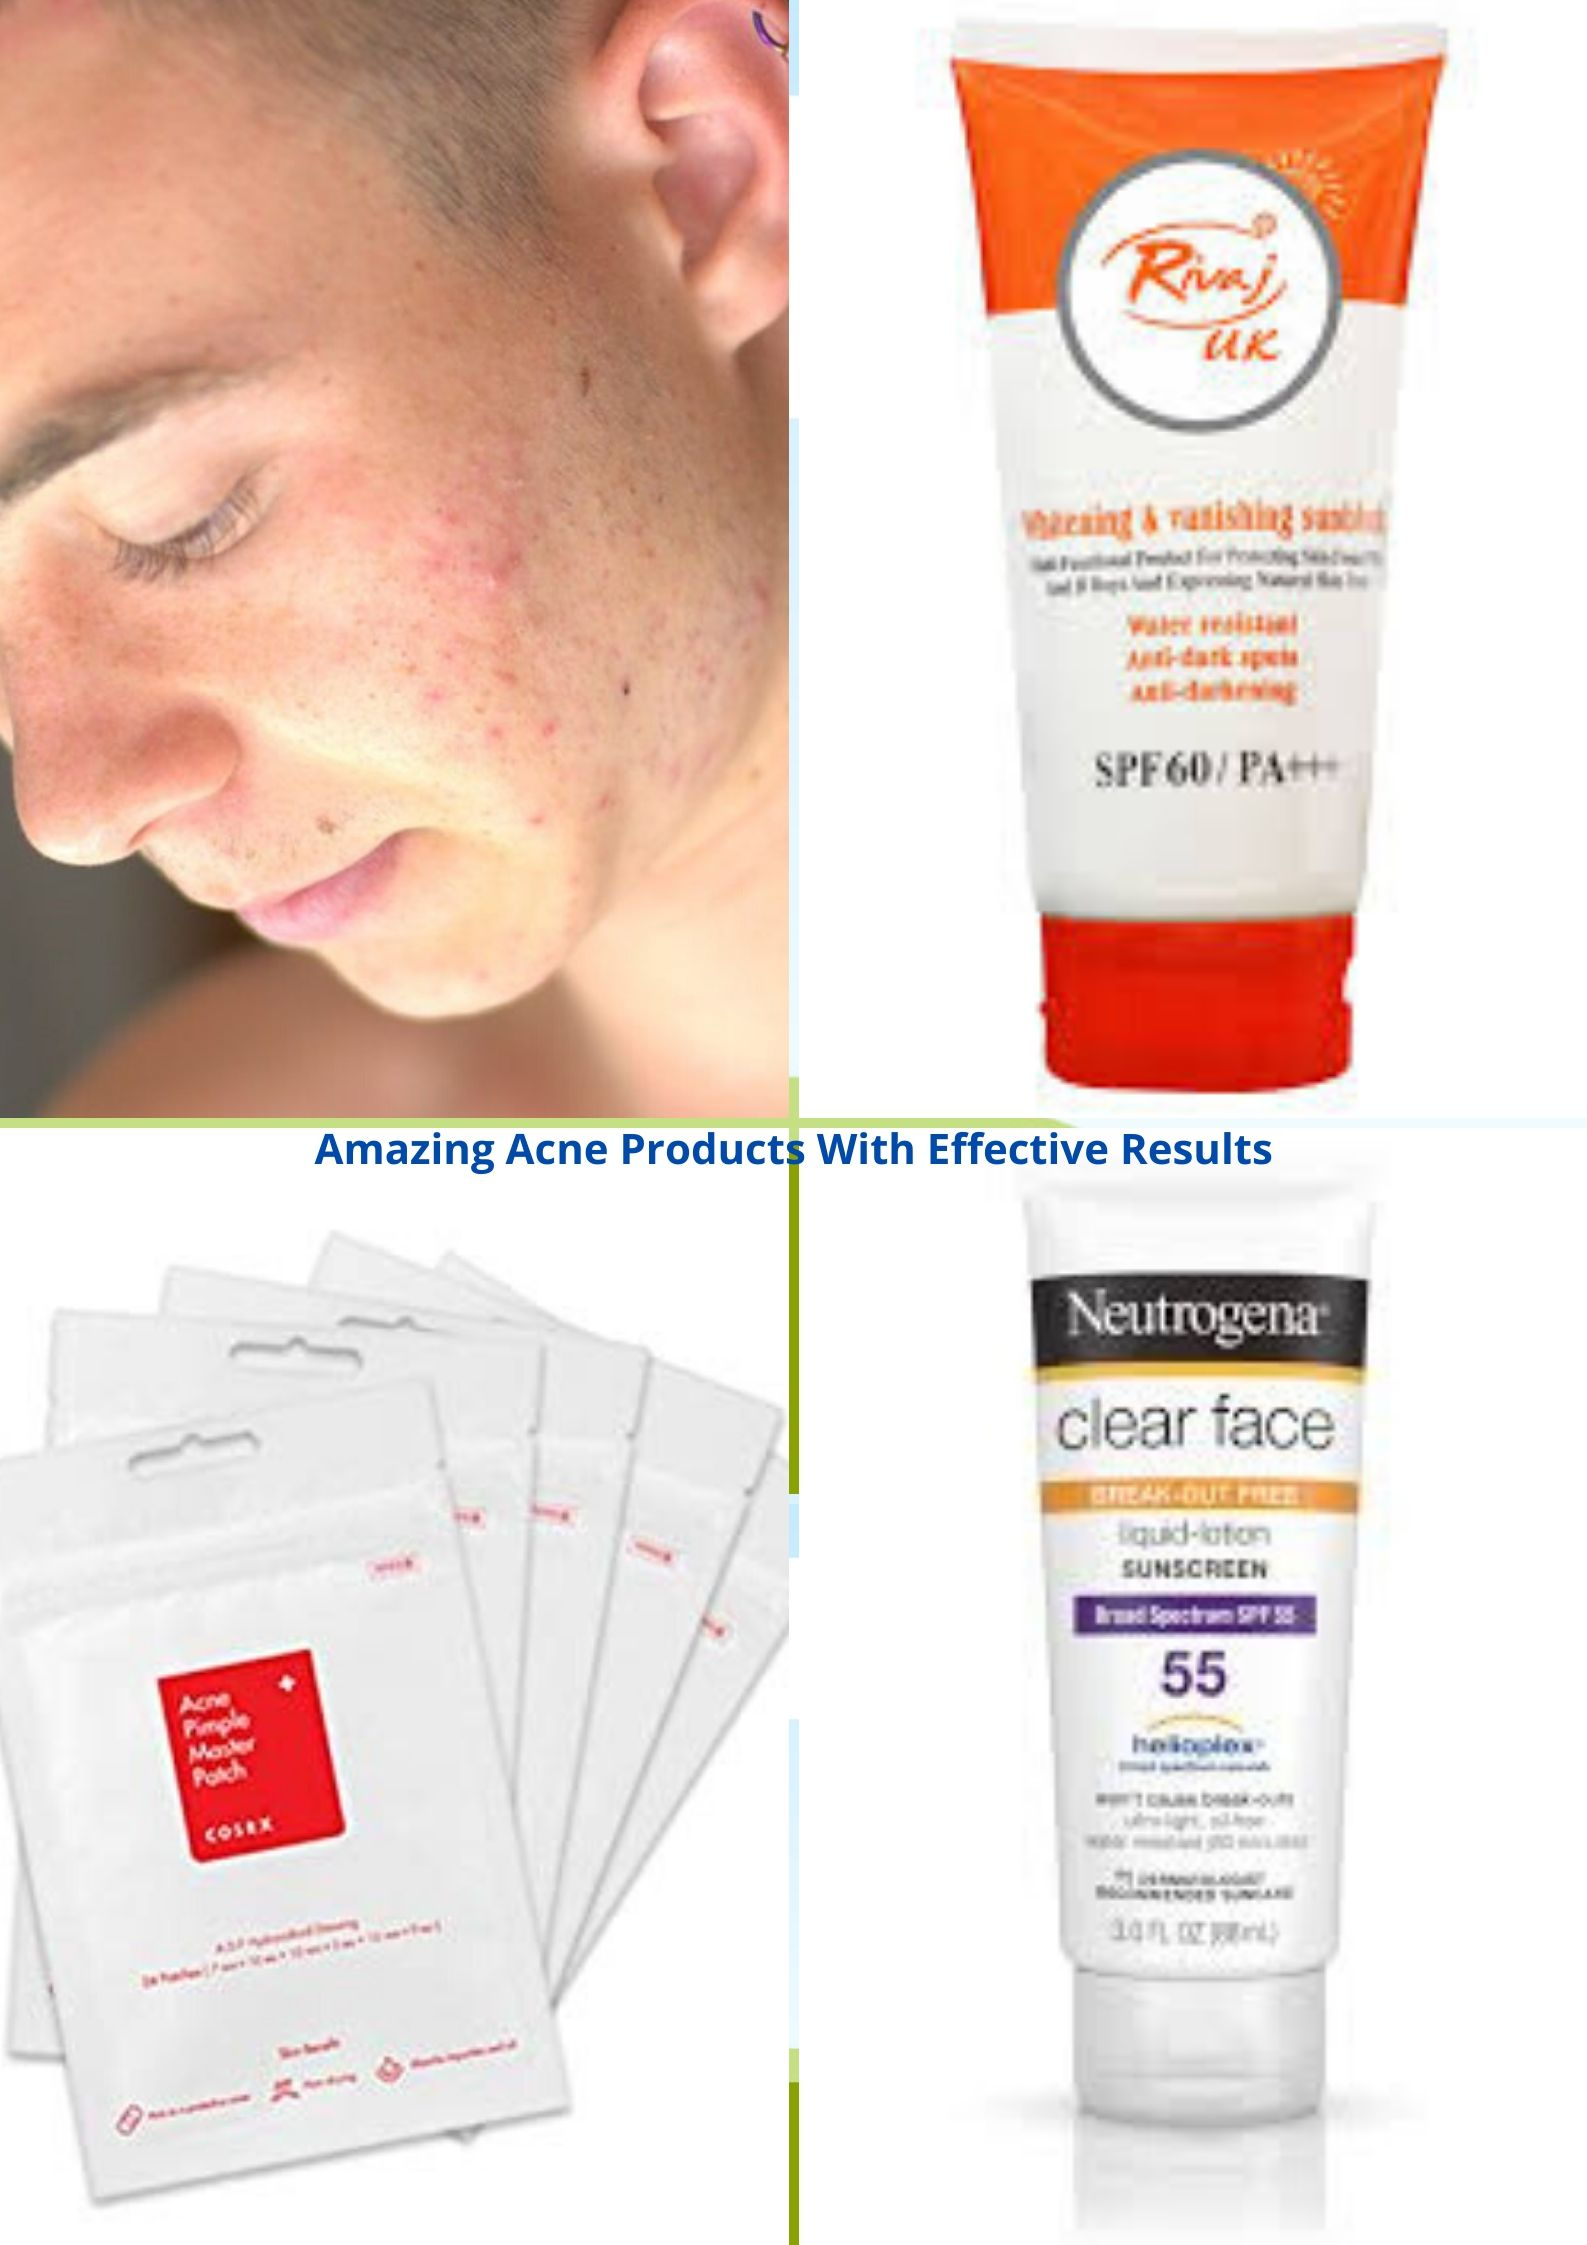 Amazing Acne Products With Effective Results